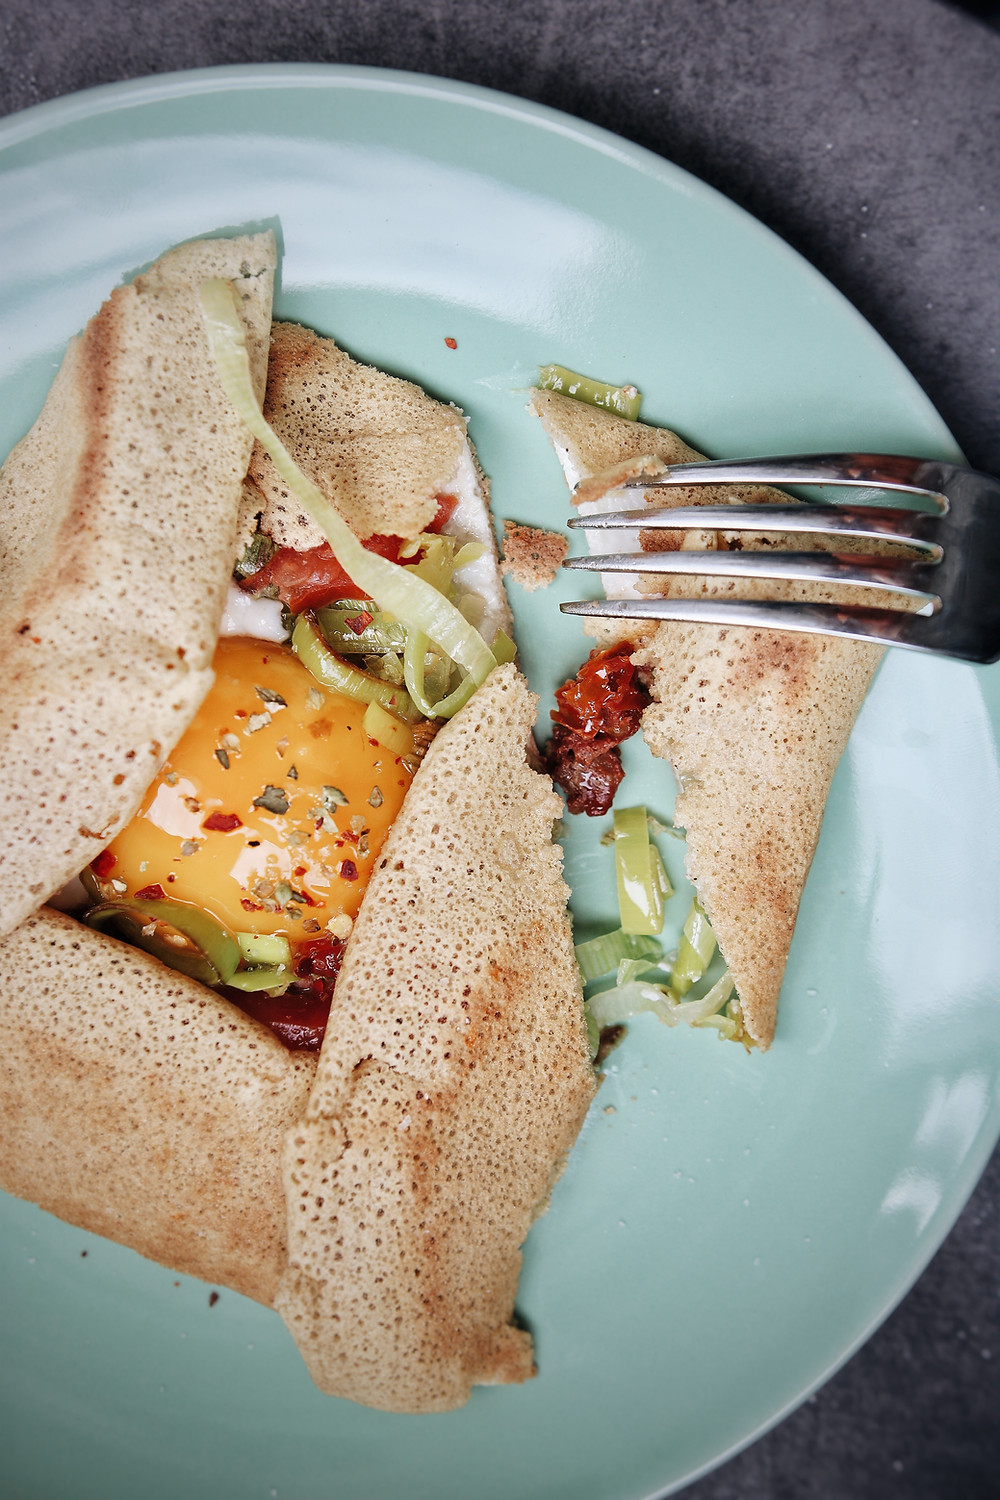 A buckwheat crepe is on a blue plate, a fork has cut a piece of the crepe. Filled with egg, leeks, and tomatoes.